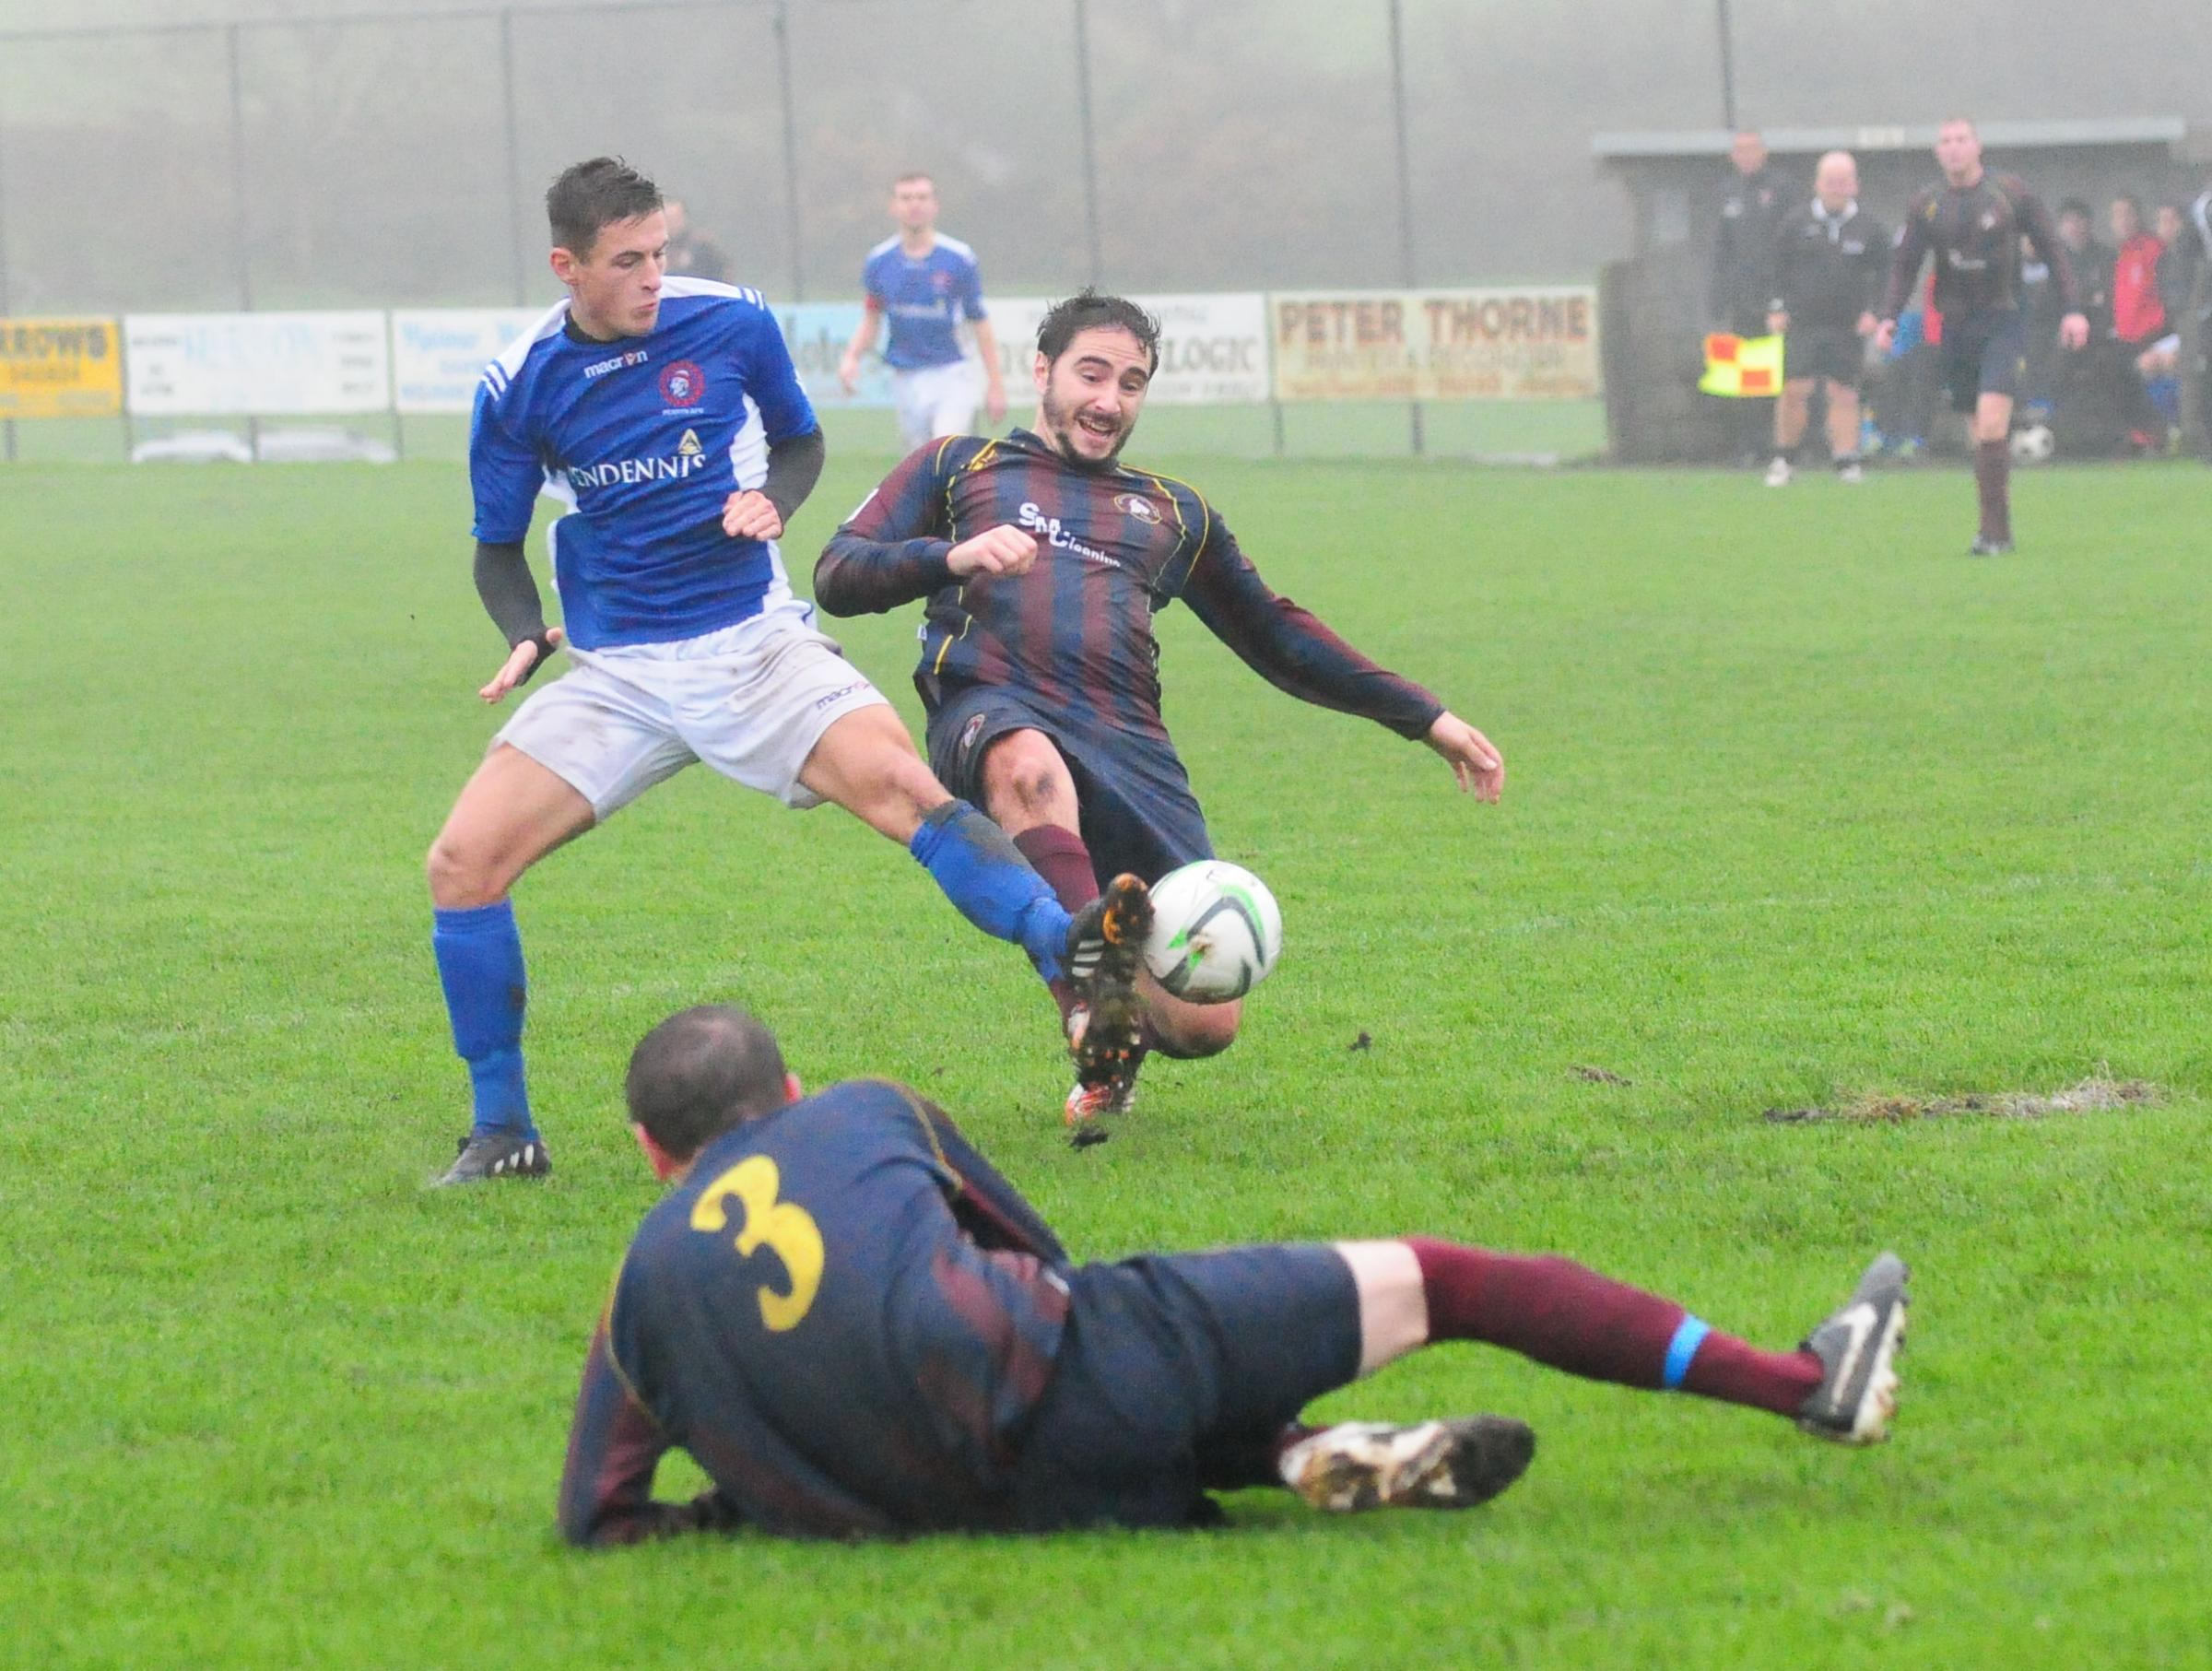 Penryn striker Dave Broglino is thwarted by Wendron defender Matt Rose during Saturday's windswept derby at Underlane in Division 1 West of the South-Western Peninsula League.